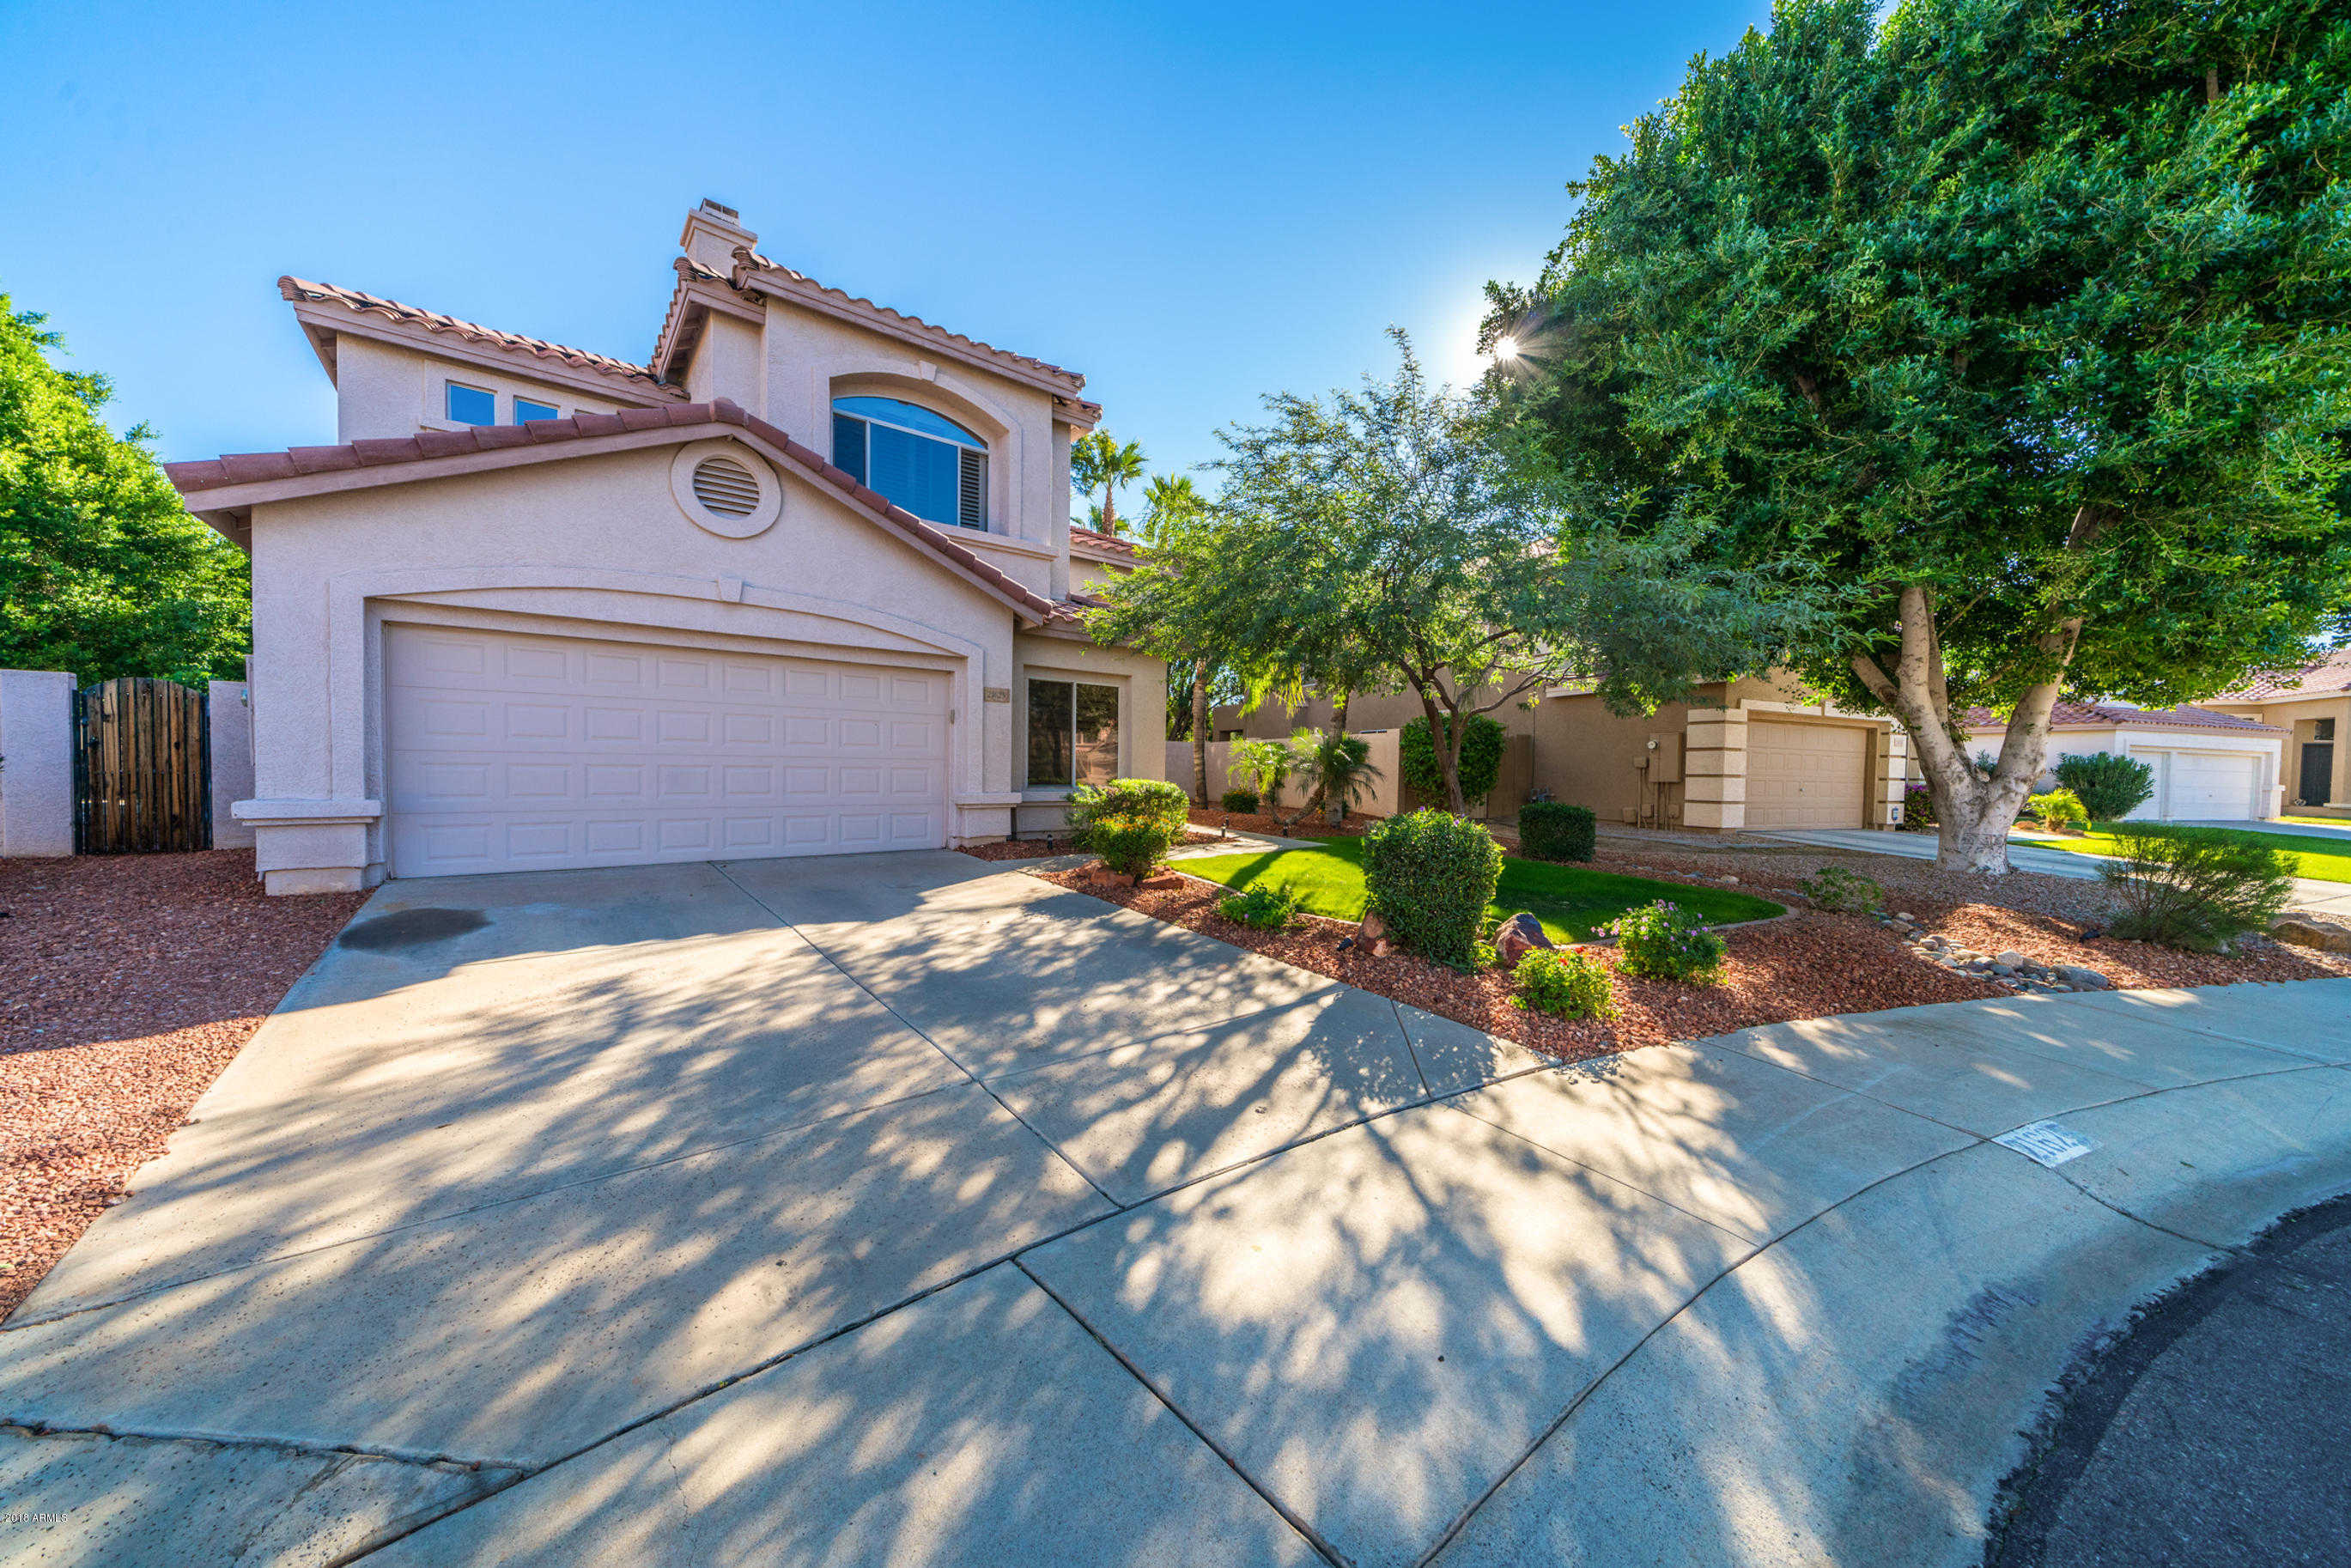 $390,000 - 5Br/3Ba - Home for Sale in Arrowhead Ranch Parcel 3&4, Glendale